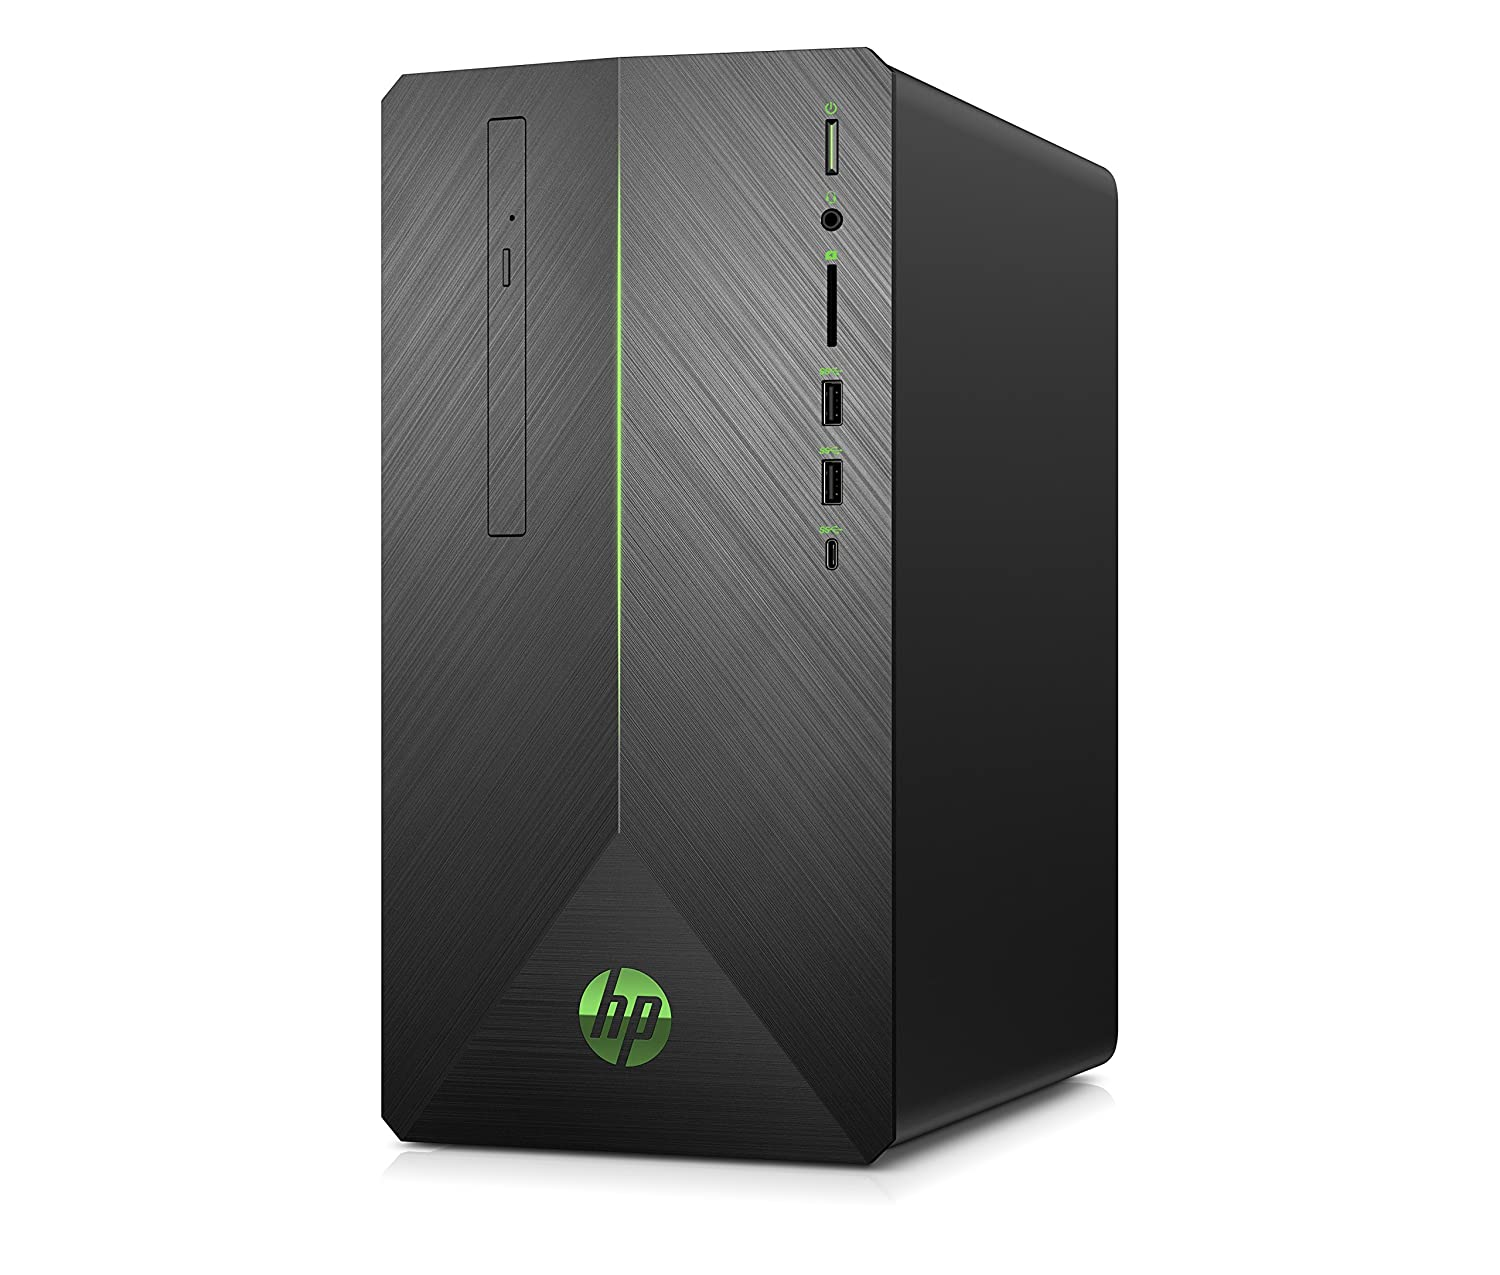 HP Pavilion Gaming 690-0023ns- Ordenador de sobremesa (Intel Core i3-8100, 8GB RAM, 1TB HDD, Nvidia GeForce GTX1050-2GB, sin sistema operativo), color ...